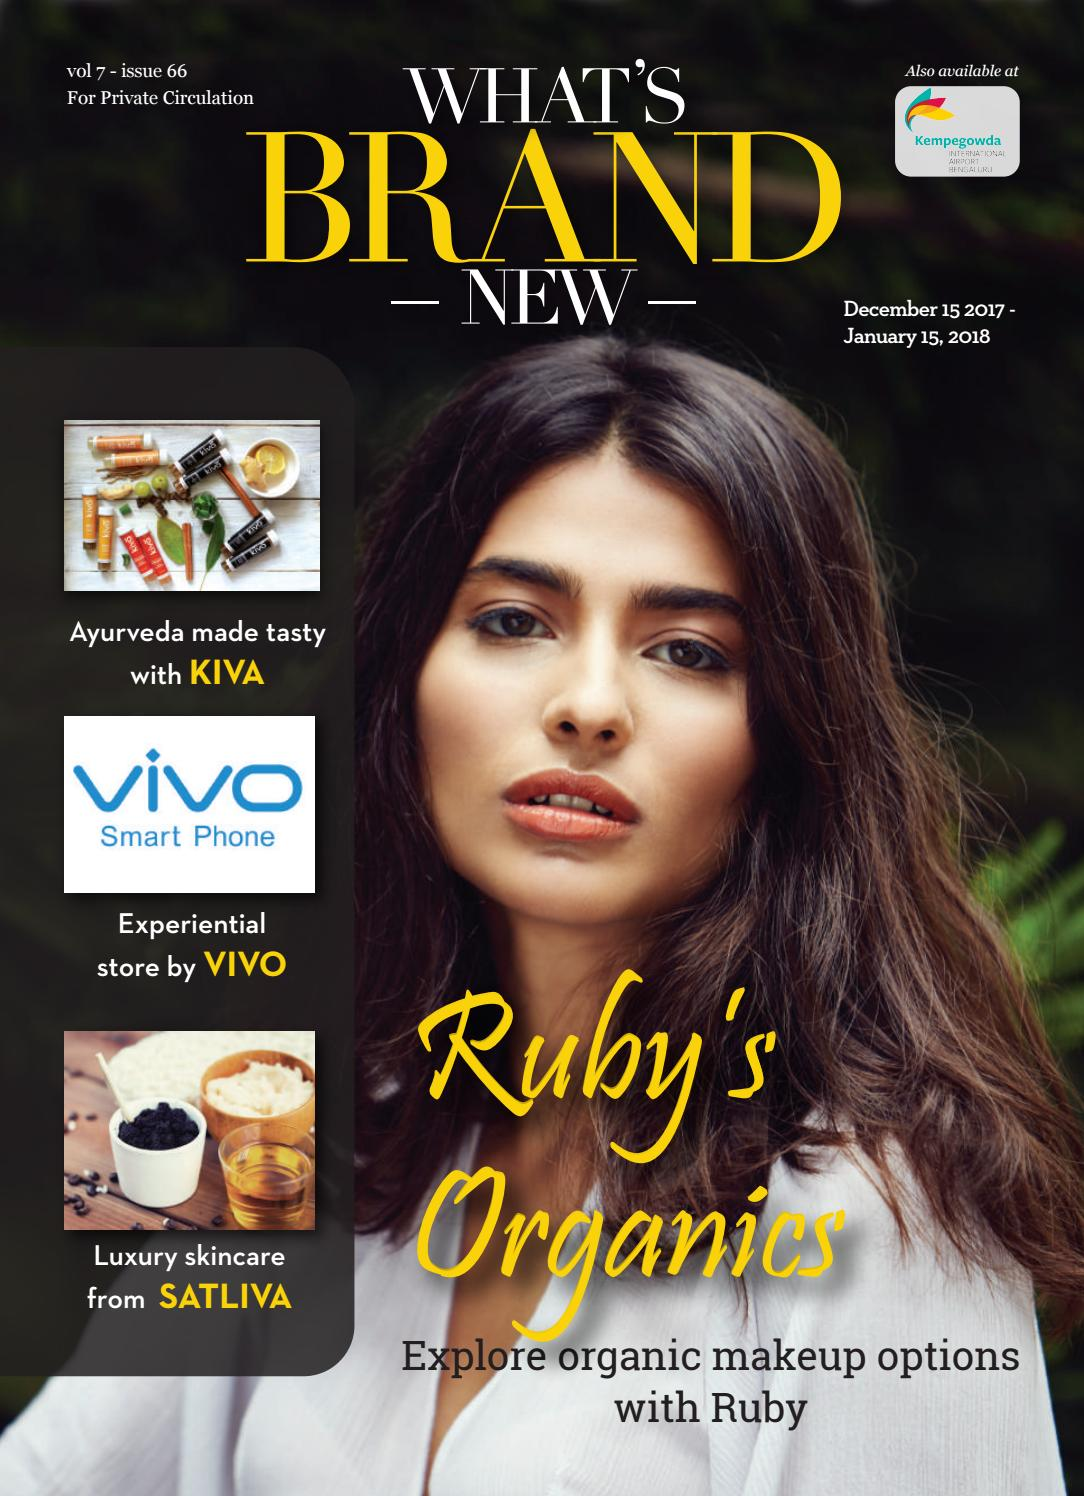 2a2dd7899df6 What's Brand New December 15 2017 - January 15 2018 by What's Brand New -  issuu